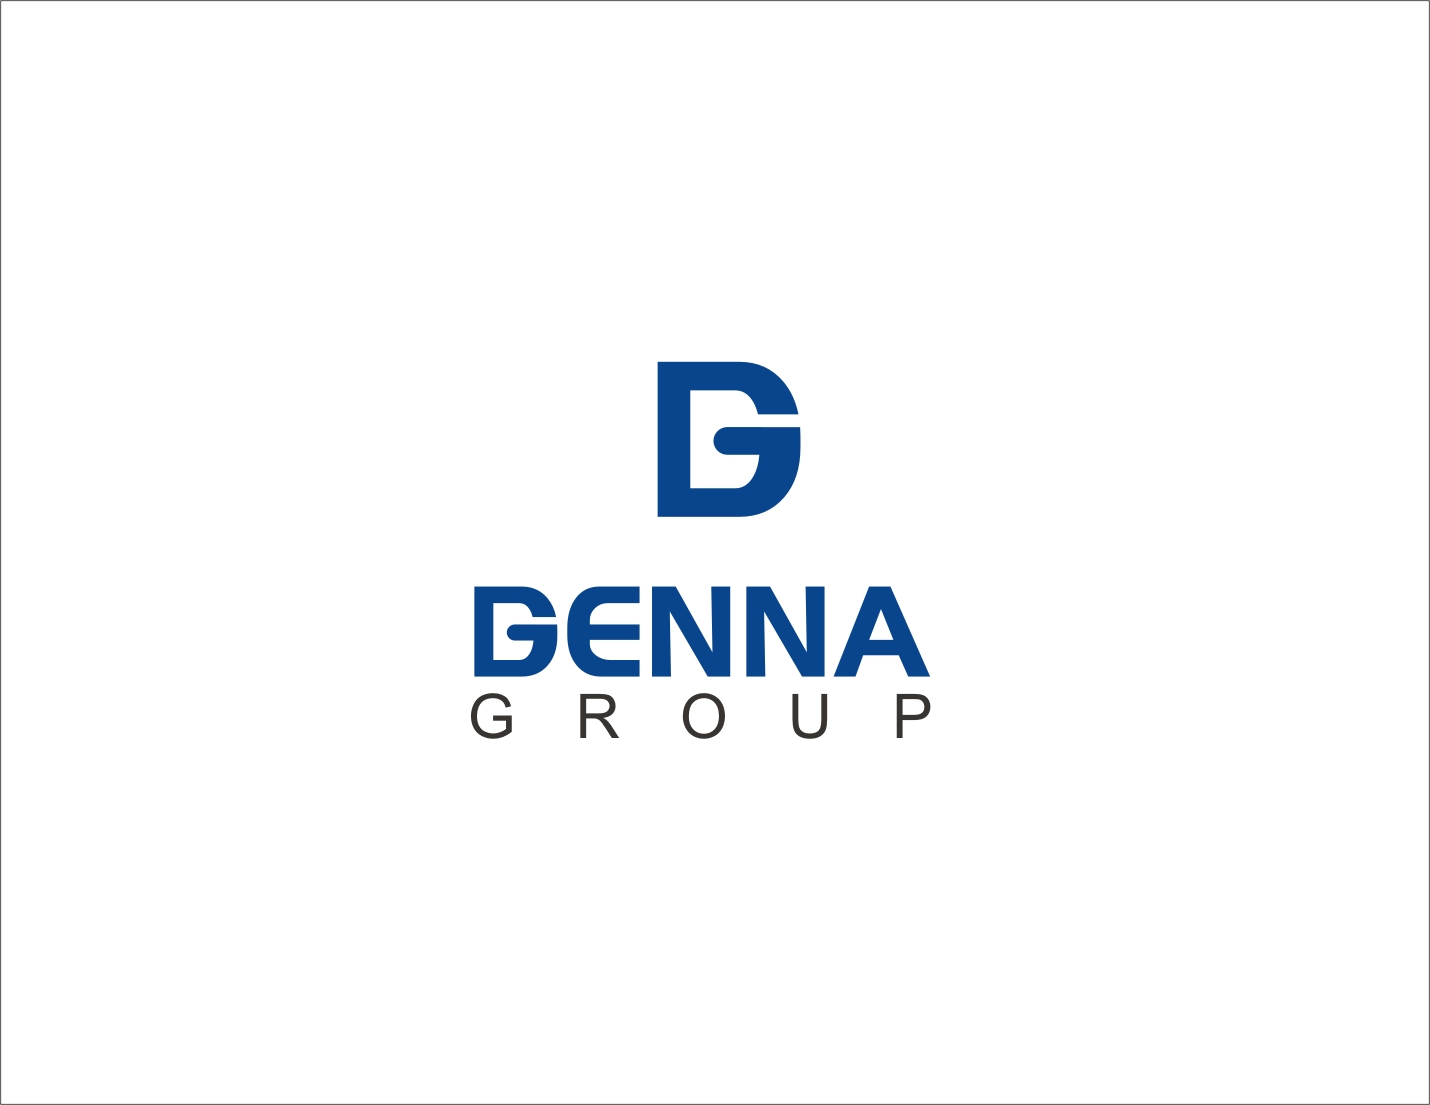 Logo Design by Private User - Entry No. 199 in the Logo Design Contest Denna Group Logo Design.